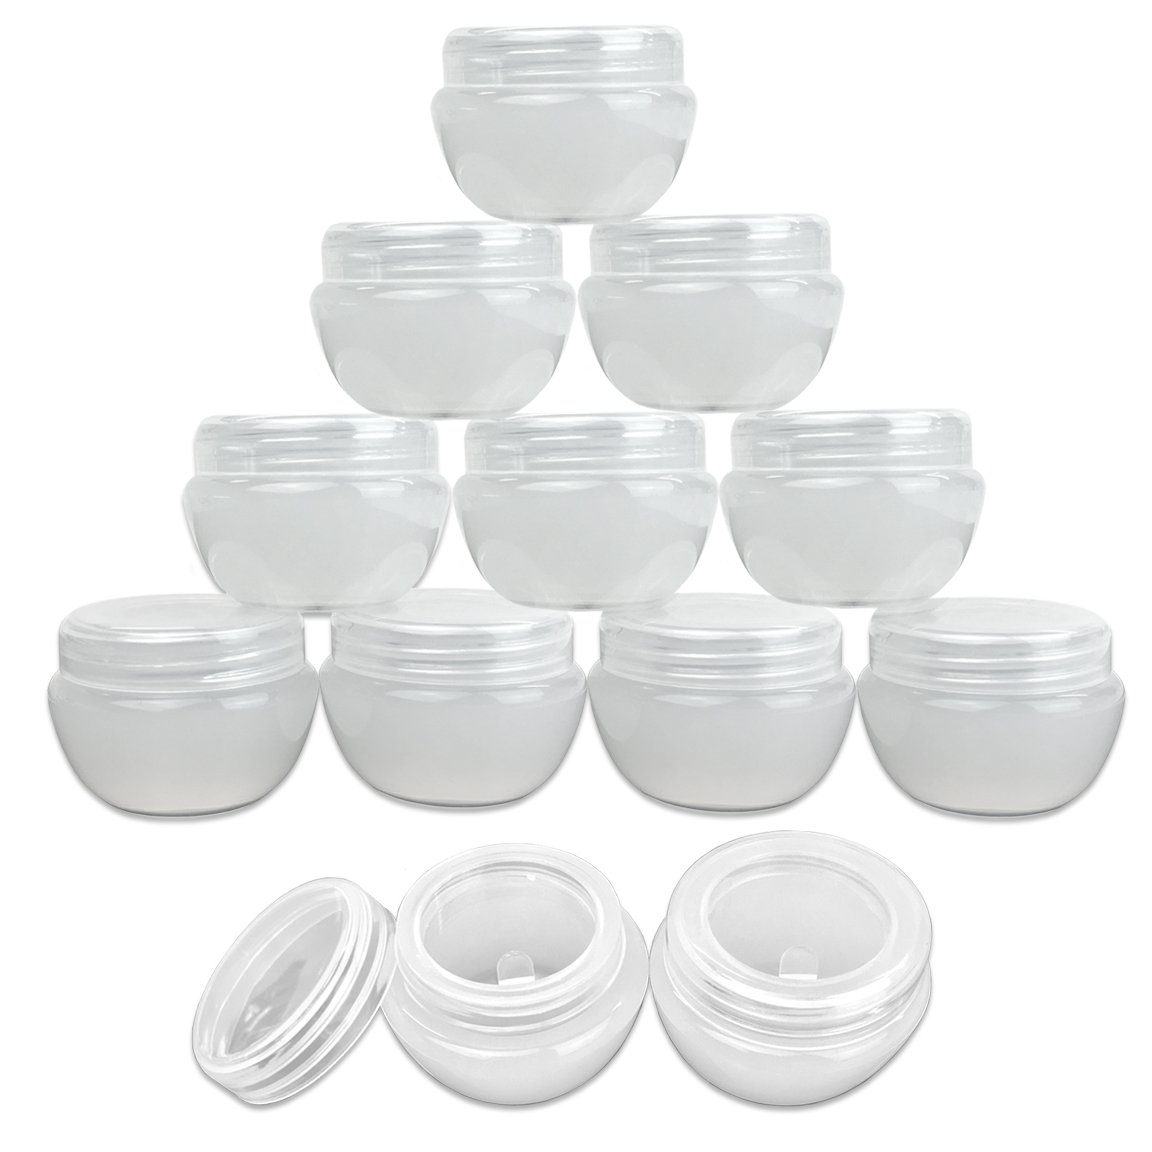 Beauticom White Frosted 10g or 10ml Durable Cosmetic Sample Empty Refillable Container, Plastic Makeup Cosmetic Cream Jar Pot Bottle Container 60 Pieces